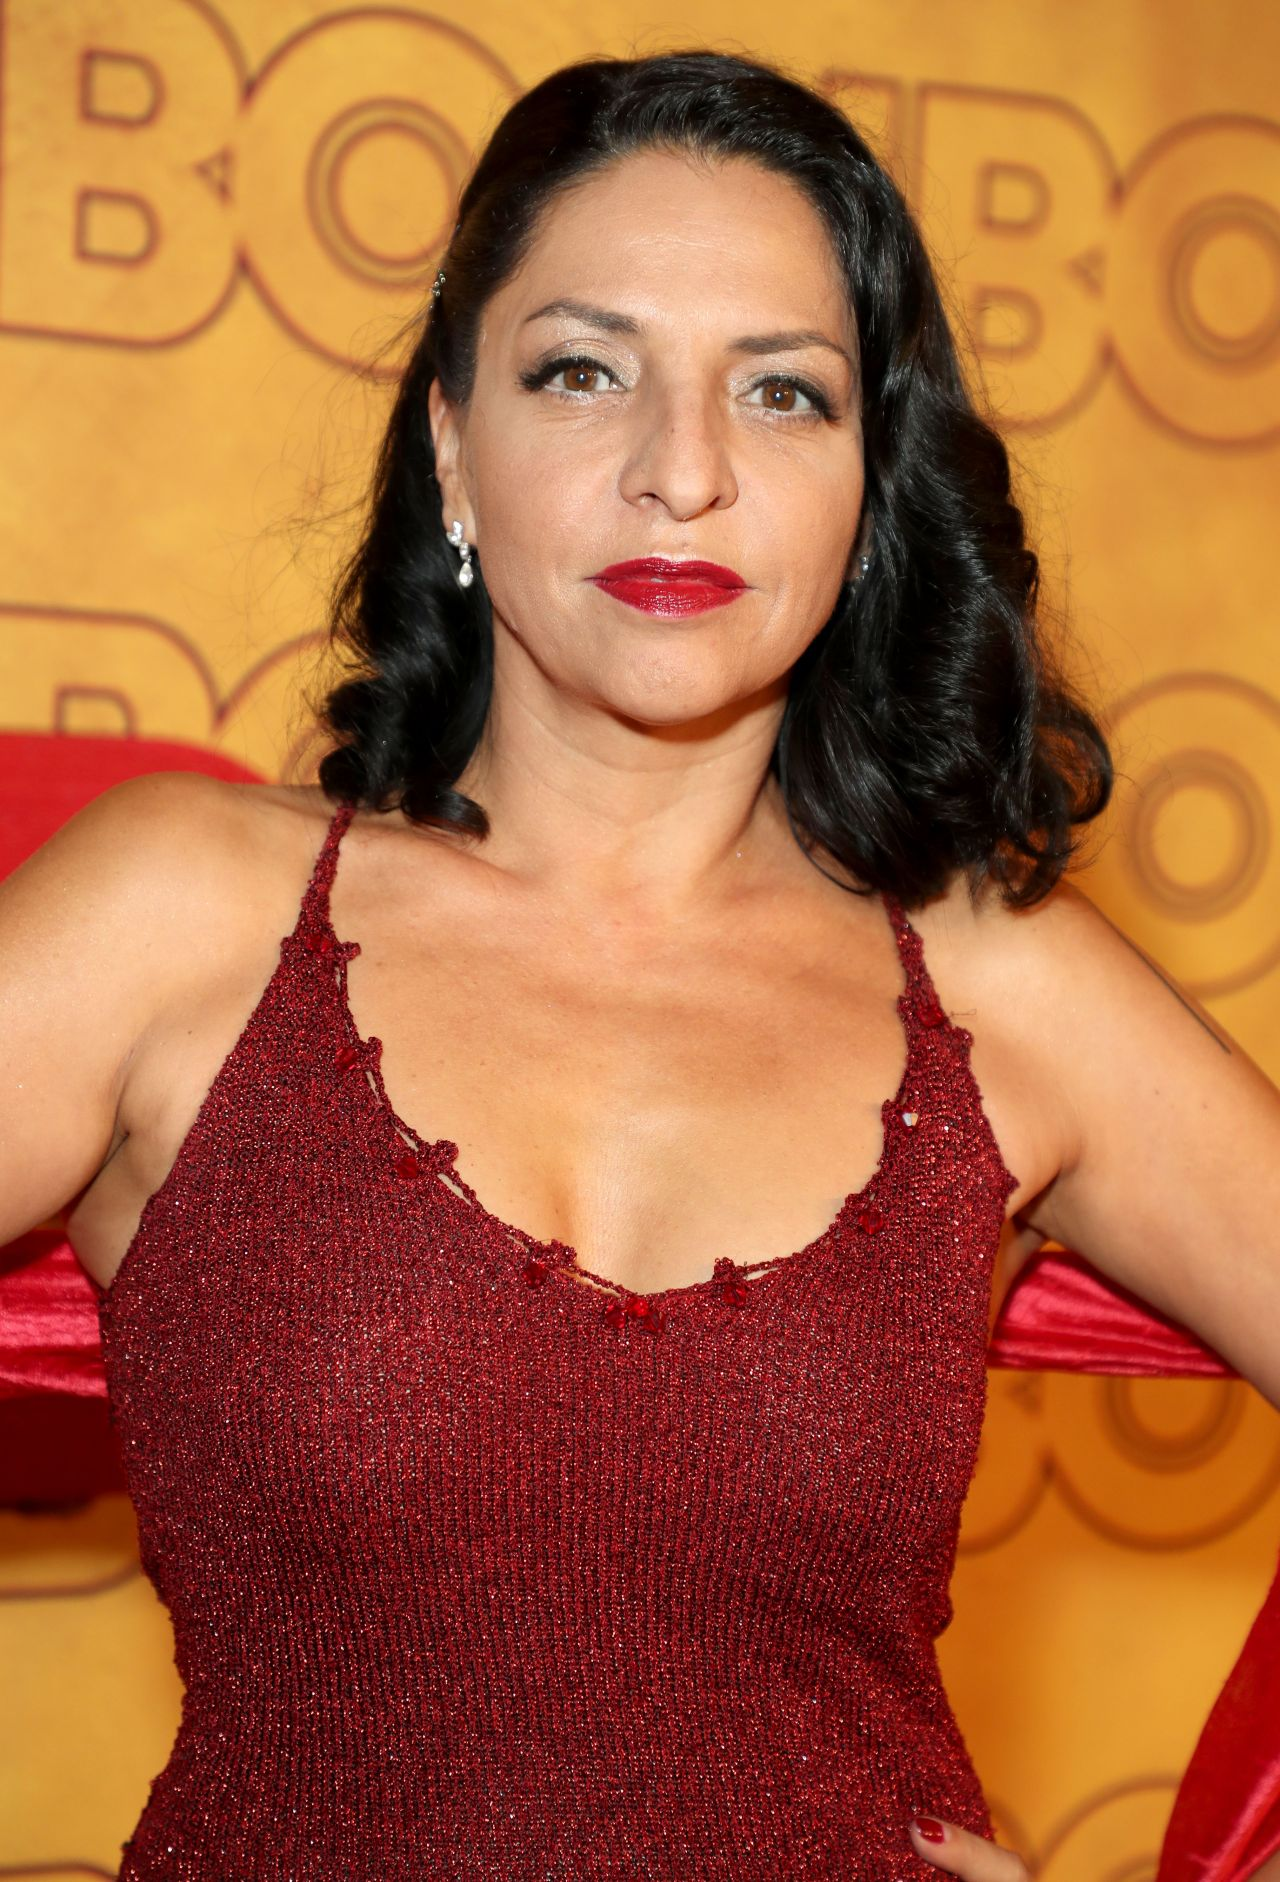 Veronica Falcon Hbo S Post Emmy Awards Party In La 09 17